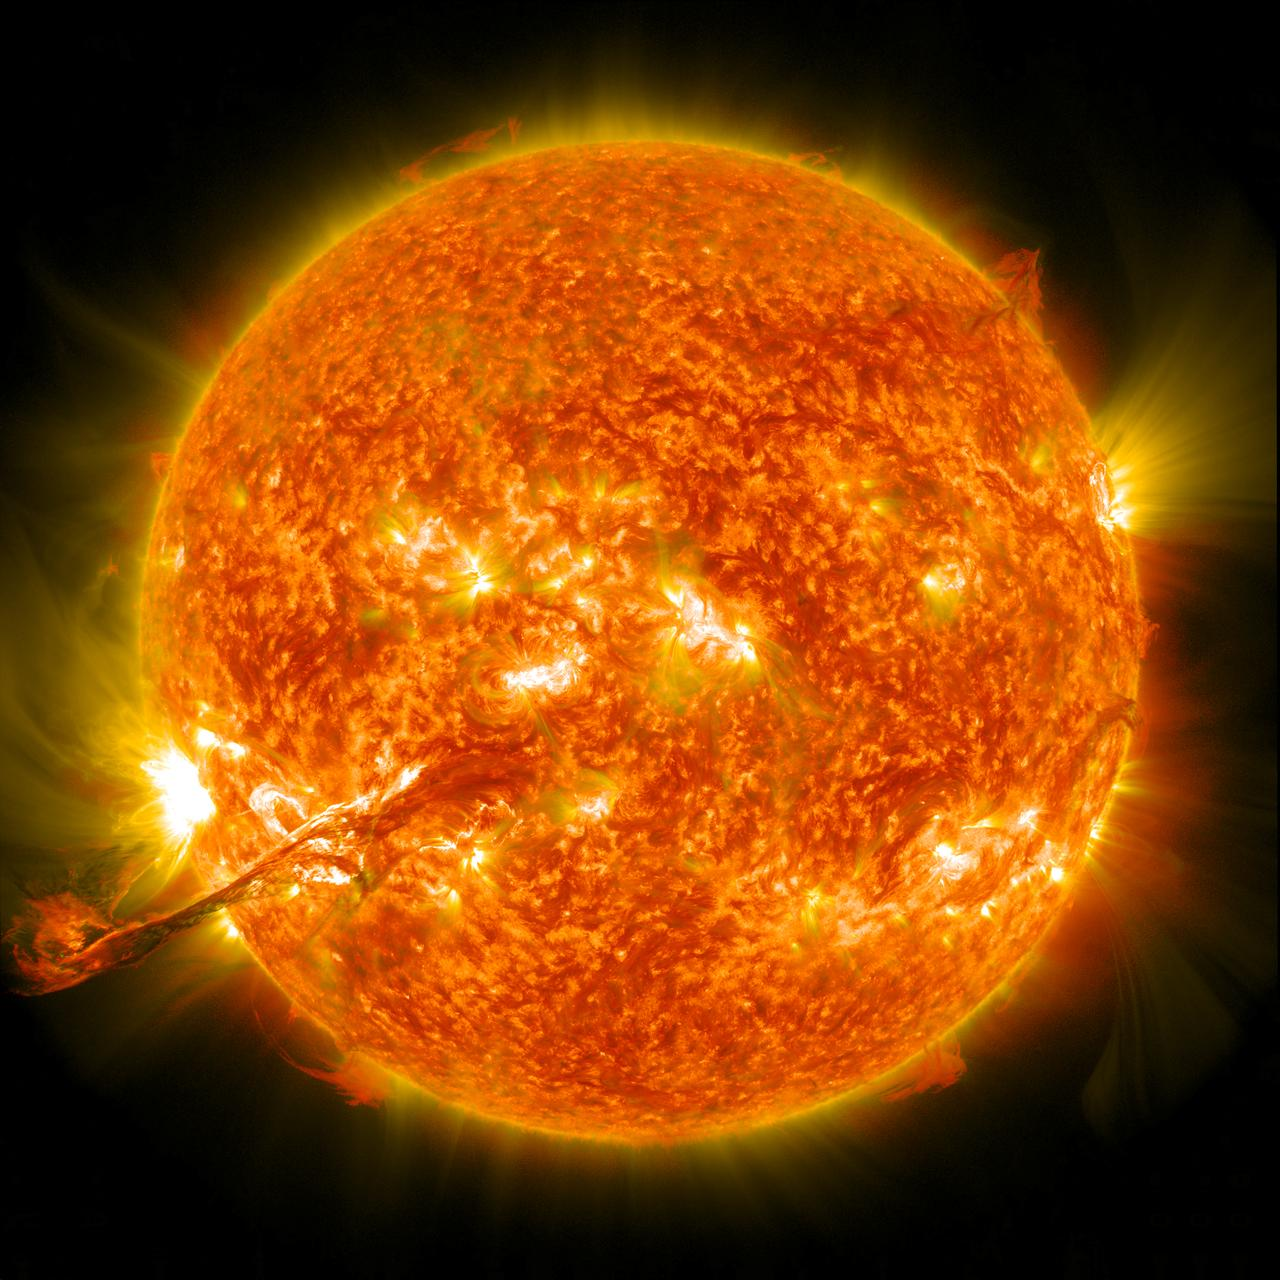 "On August 31, 2012 a long filament of solar material that had been hovering in the sun's atmosphere, the corona, erupted out into space at 4:36 p.m. EDT. The coronal mass ejection, or CME, traveled at over 900 miles per second. The CME did not travel directly toward Earth, but did connect with Earth's magnetic environment, or magnetosphere, causing aurora to appear on the night of Monday, September 3.   This is a a lighten blended version of the 304 and 171 angstrom wavelengths.  Credit: NASA/GSFC/SDO  <b><a href=""http://www.nasa.gov/audience/formedia/features/MP_Photo_Guidelines.html"" rel=""nofollow"">NASA image use policy.</a></b>  <b><a href=""http://www.nasa.gov/centers/goddard/home/index.html"" rel=""nofollow"">NASA Goddard Space Flight Center</a></b> enables NASA's mission through four scientific endeavors: Earth Science, Heliophysics, Solar System Exploration, and Astrophysics. Goddard plays a leading role in NASA's accomplishments by contributing compelling scientific knowledge to advance the Agency's mission.  <b>Follow us on <a href=""http://twitter.com/NASAGoddardPix"" rel=""nofollow"">Twitter</a></b>  <b>Like us on <a href=""http://www.facebook.com/pages/Greenbelt-MD/NASA-Goddard/395013845897?ref=tsd"" rel=""nofollow"">Facebook</a></b>  <b>Find us on <a href=""http://instagrid.me/nasagoddard/?vm=grid"" rel=""nofollow"">Instagram</a></b>"